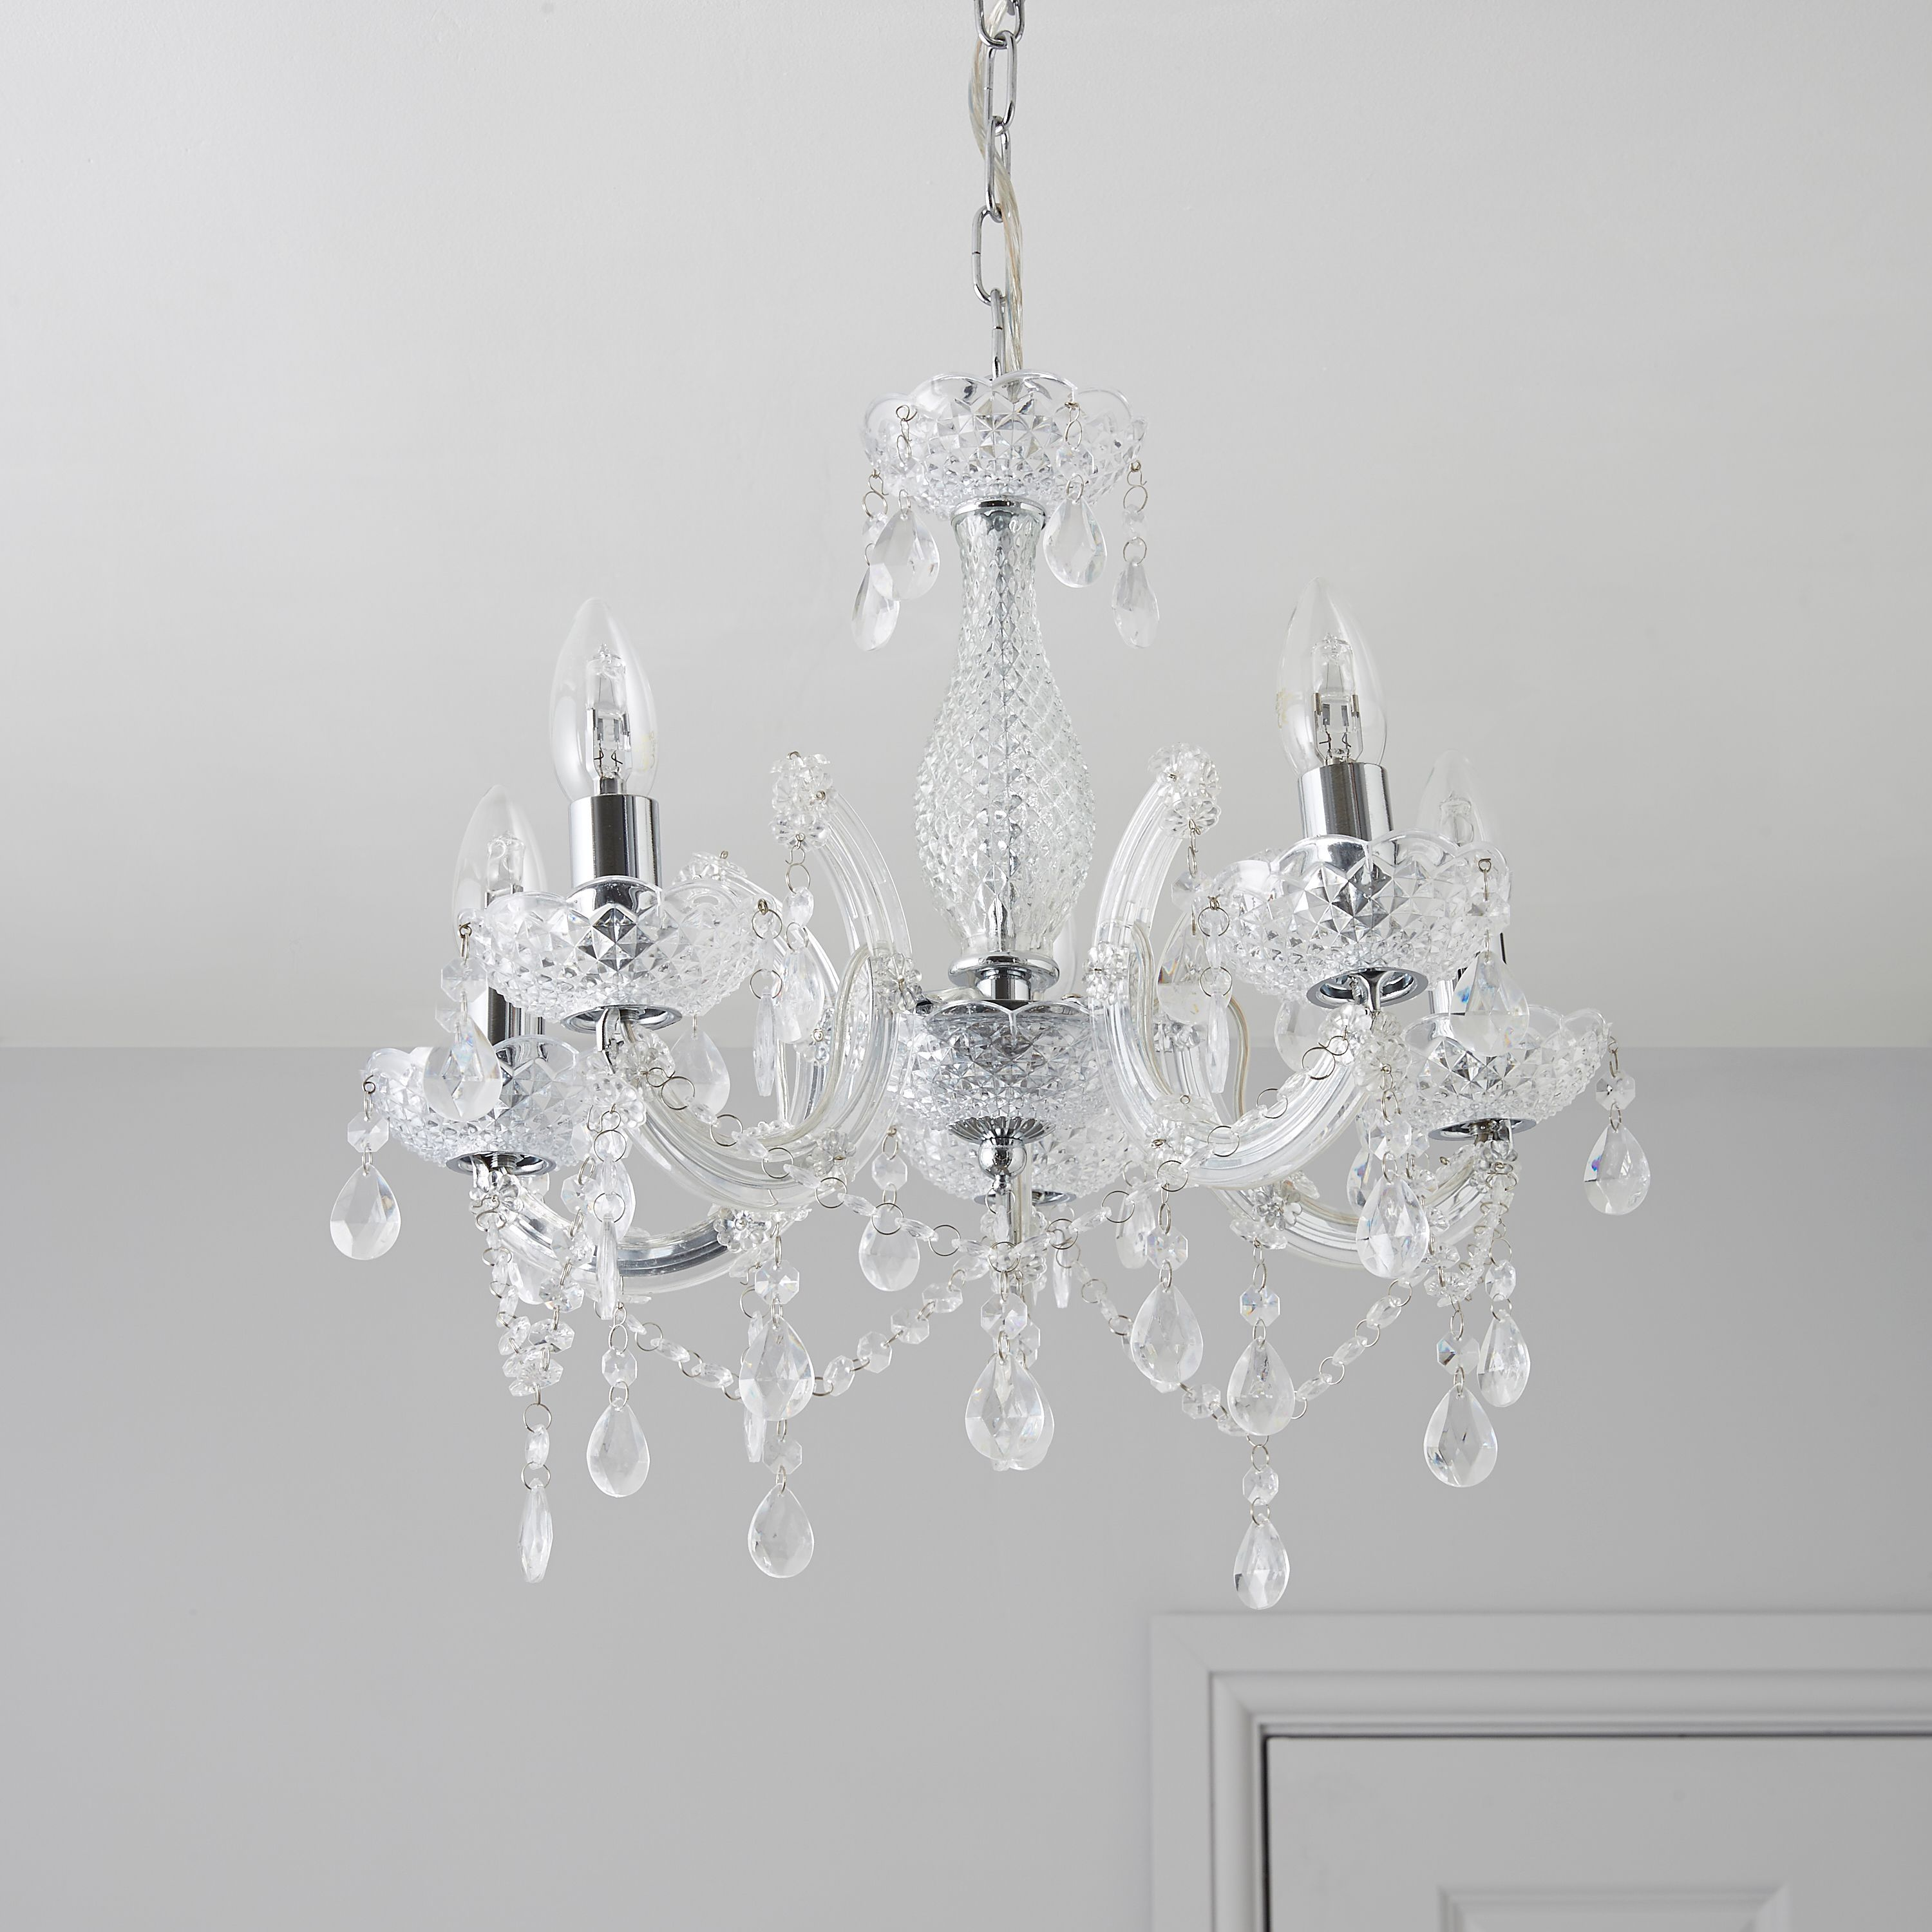 Annelise crystal droplets silver 5 lamp pendant ceiling light annelise crystal droplets 5 lamp pendant ceiling light departments diy at bq mozeypictures Images